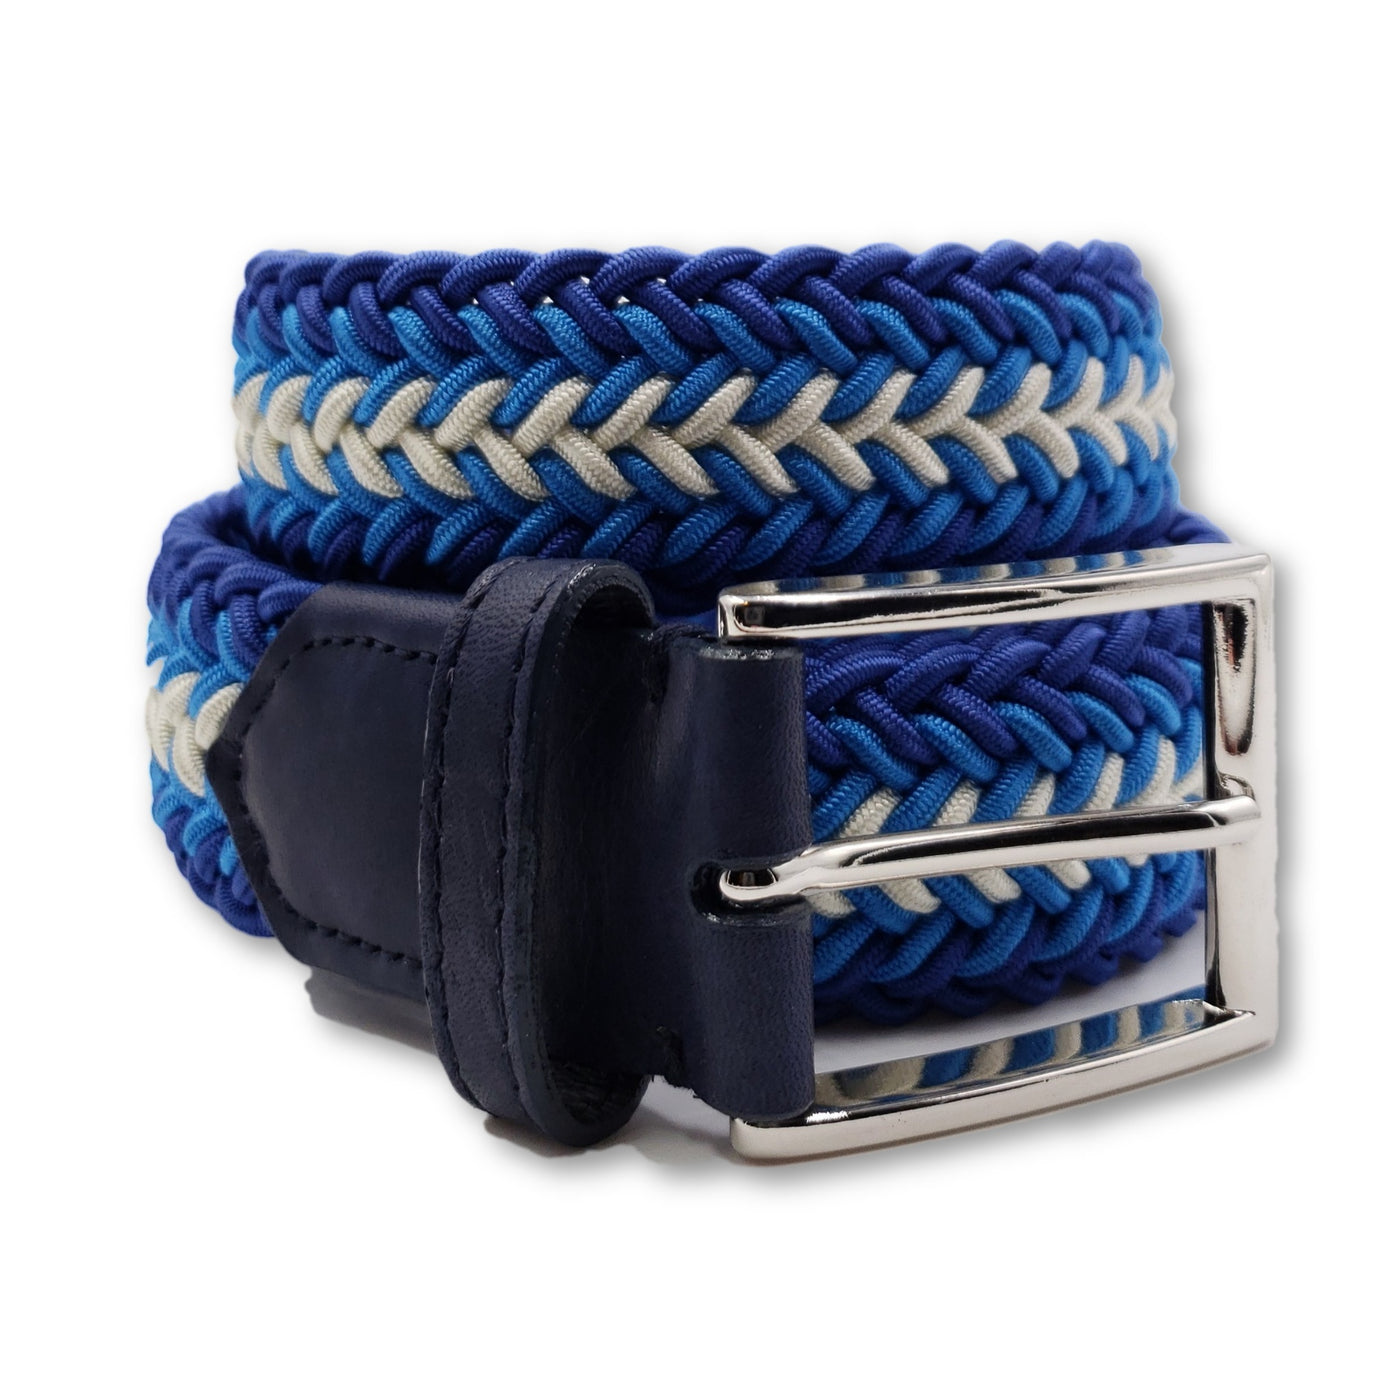 Royal Blue & White Braided Elastic Stretch Belt - FH Wadsworth